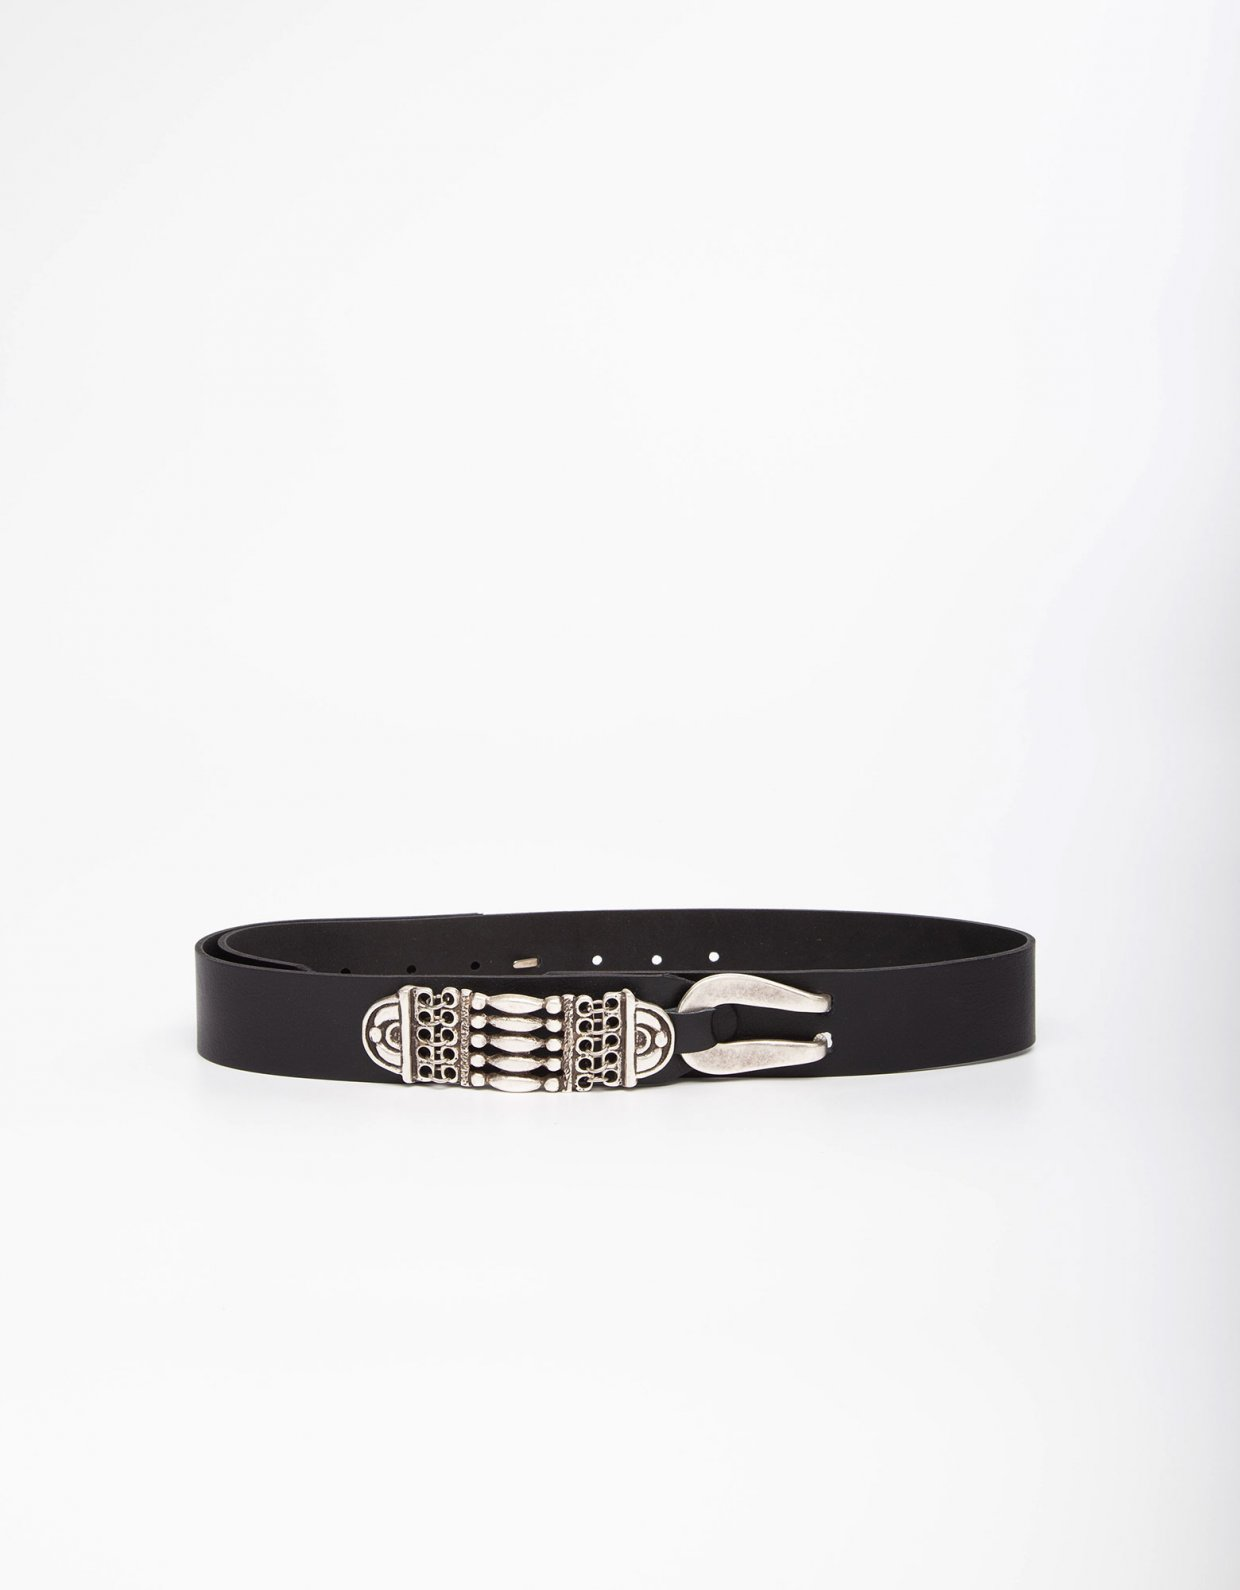 Individual Art Leather Reggae night black belt